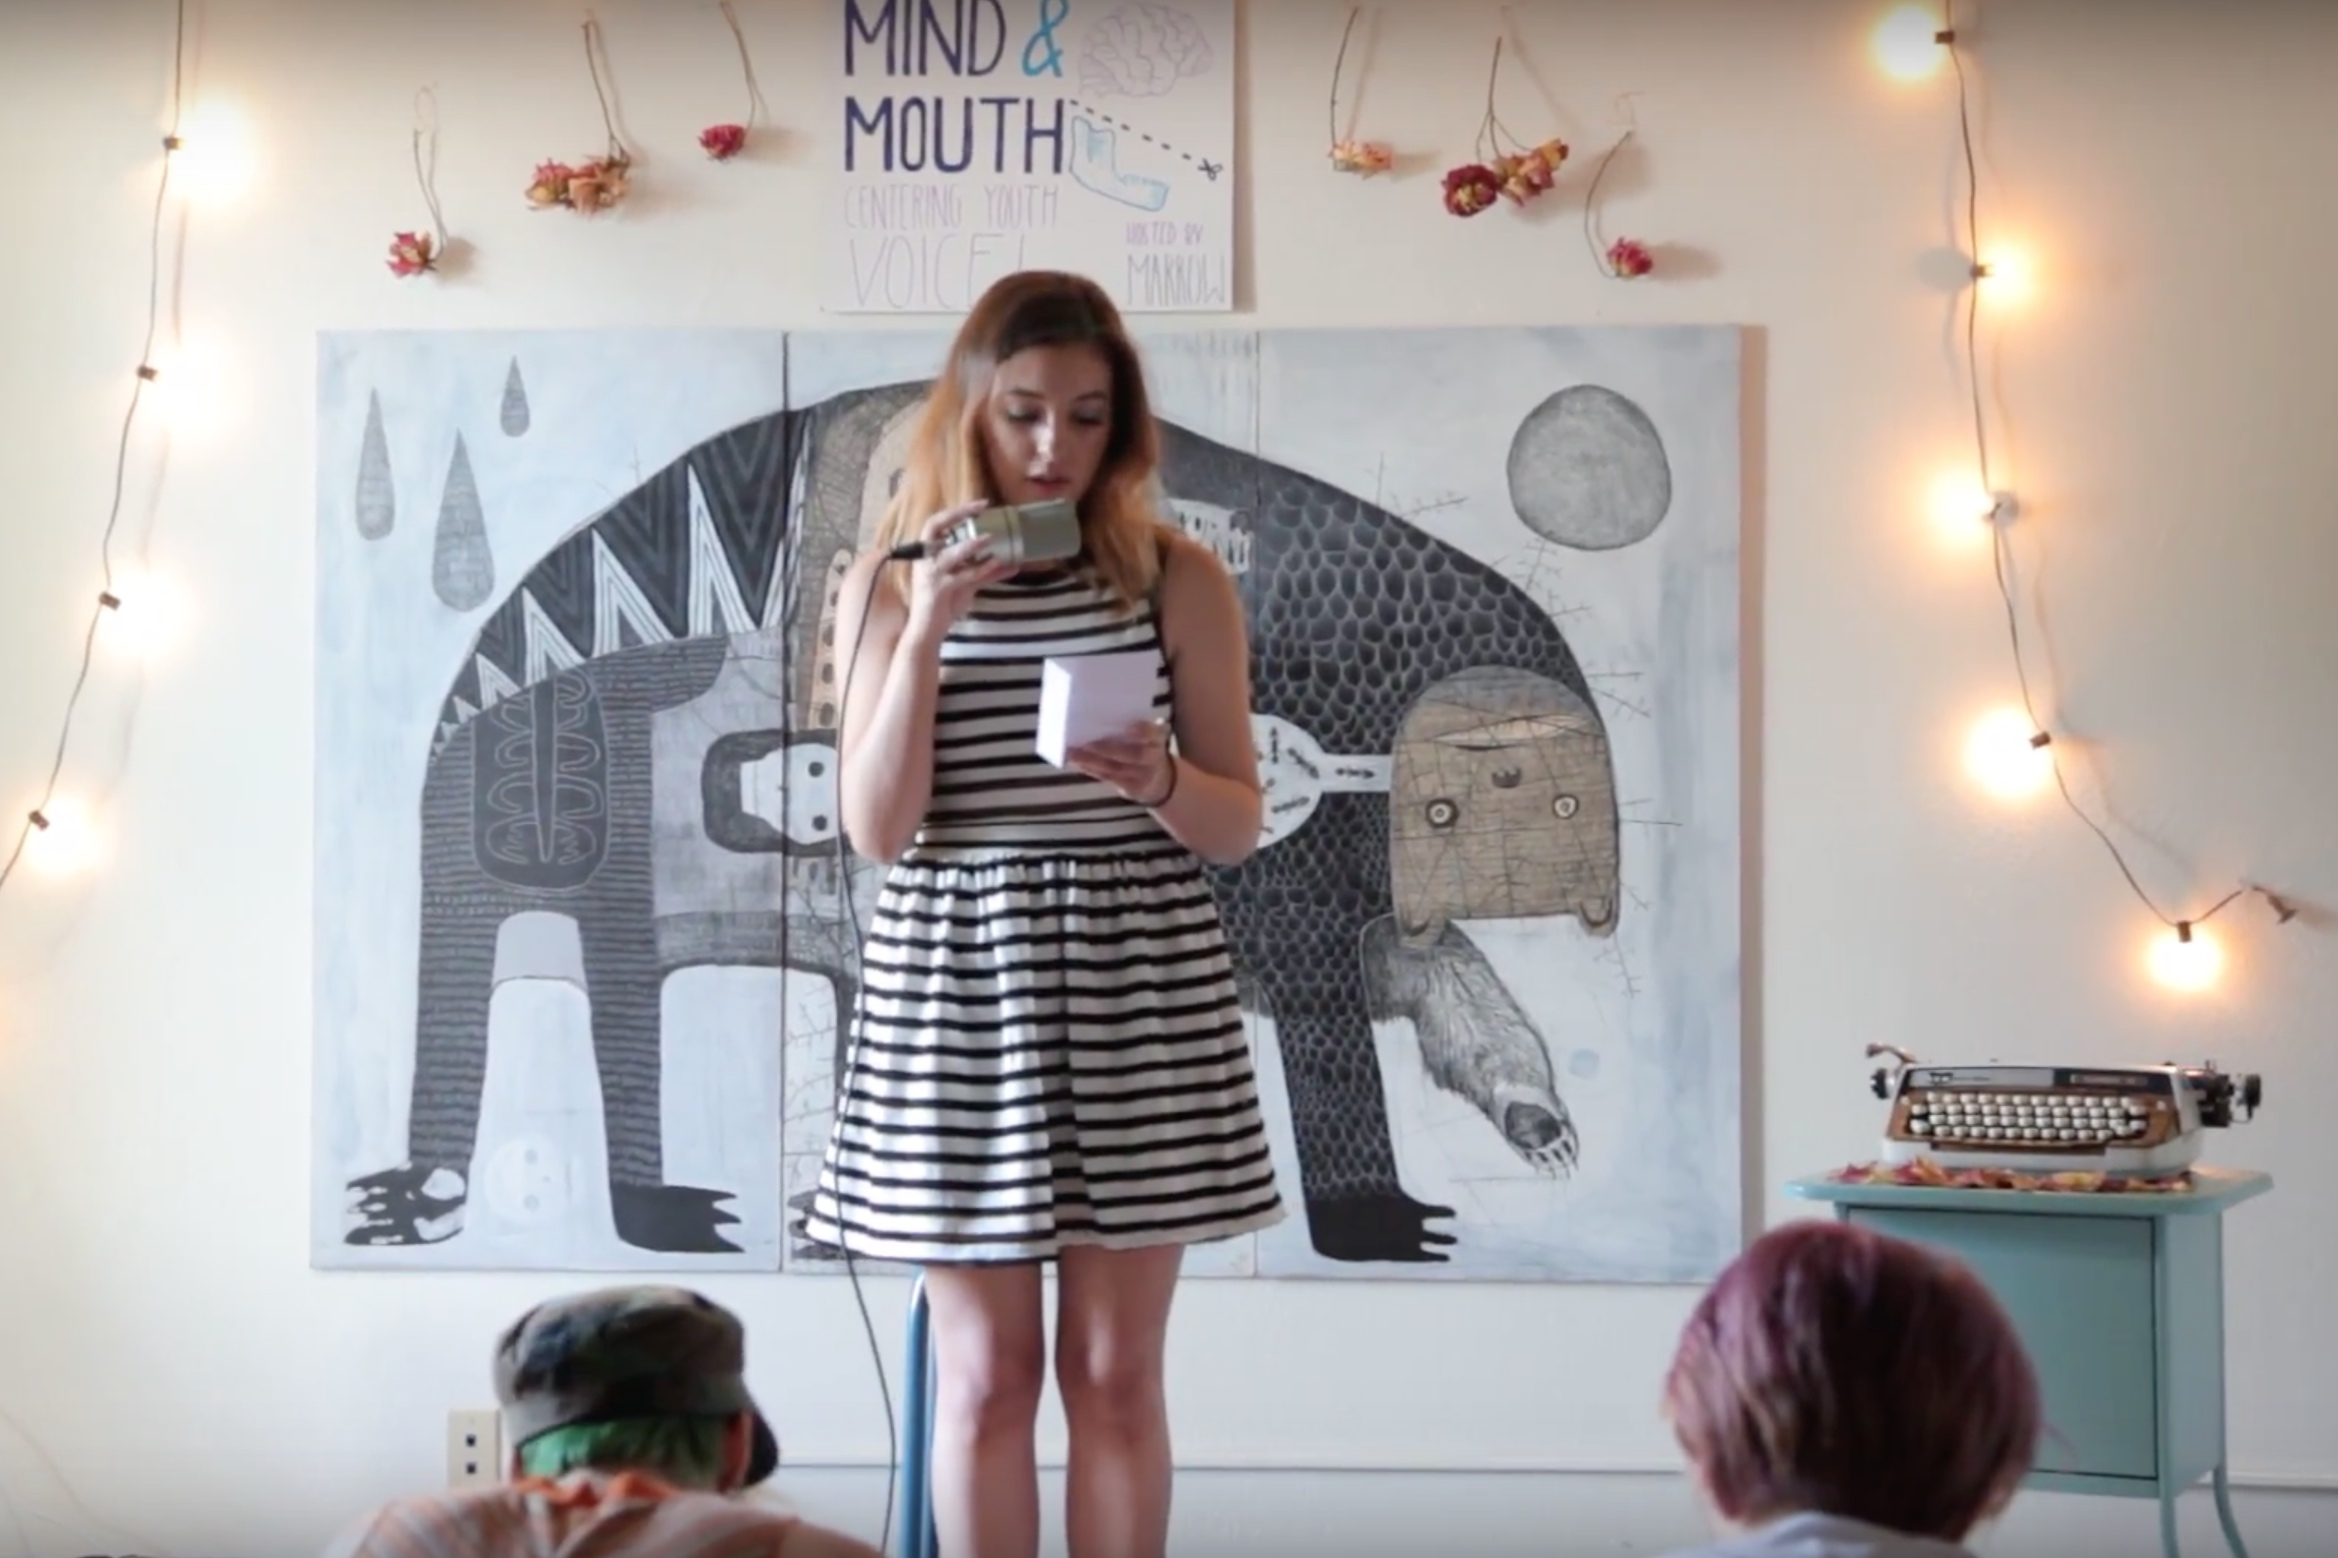 Kylin performs in front of one of Jesse's paintings at an open mic.